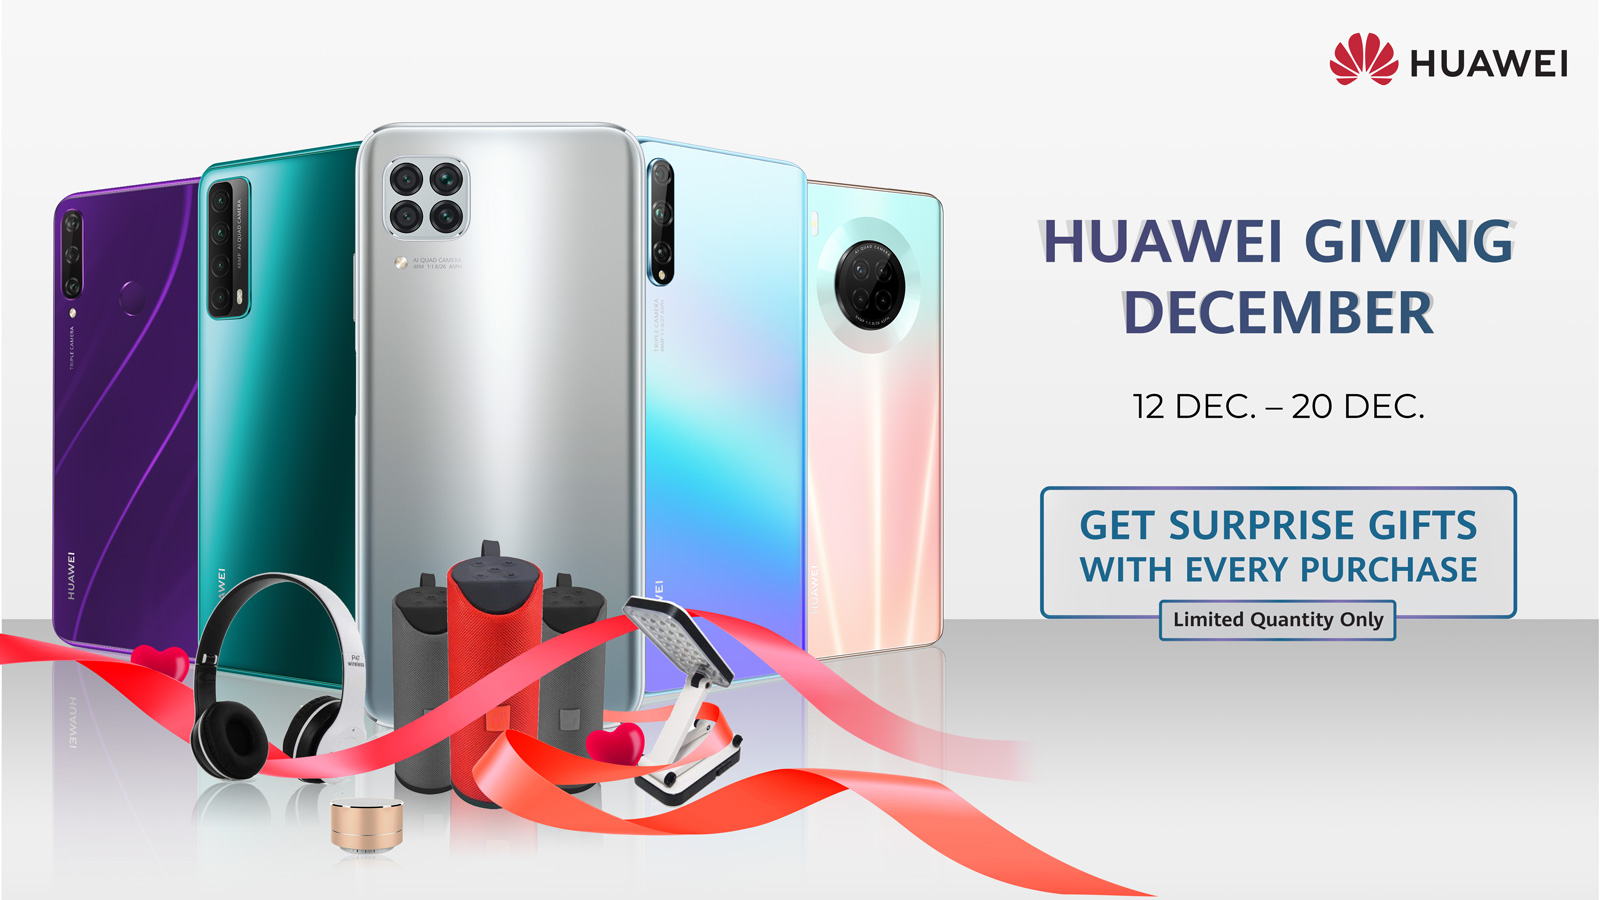 Huawei december gifts